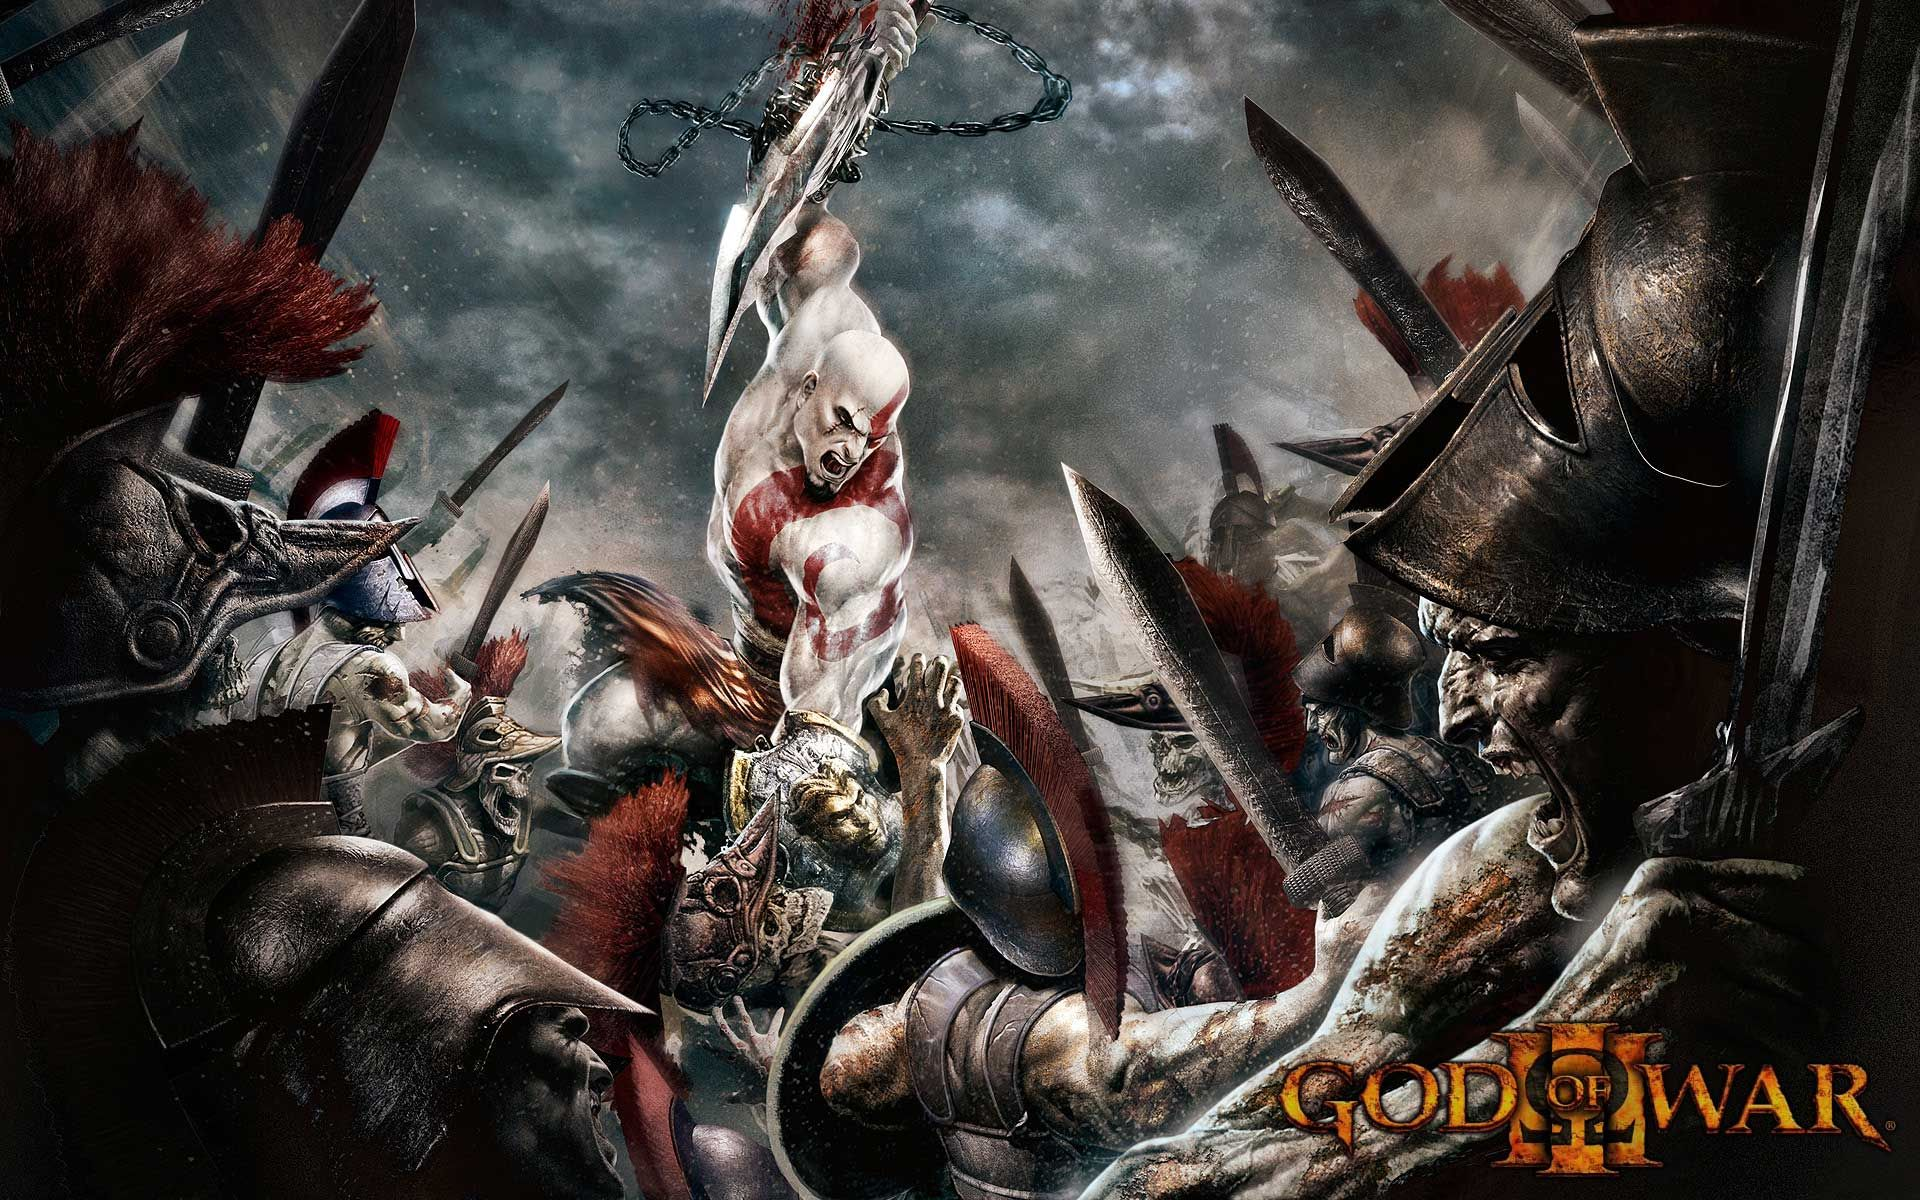 GOD OF WAR Screenwriters Talk Script's Grounded Approach